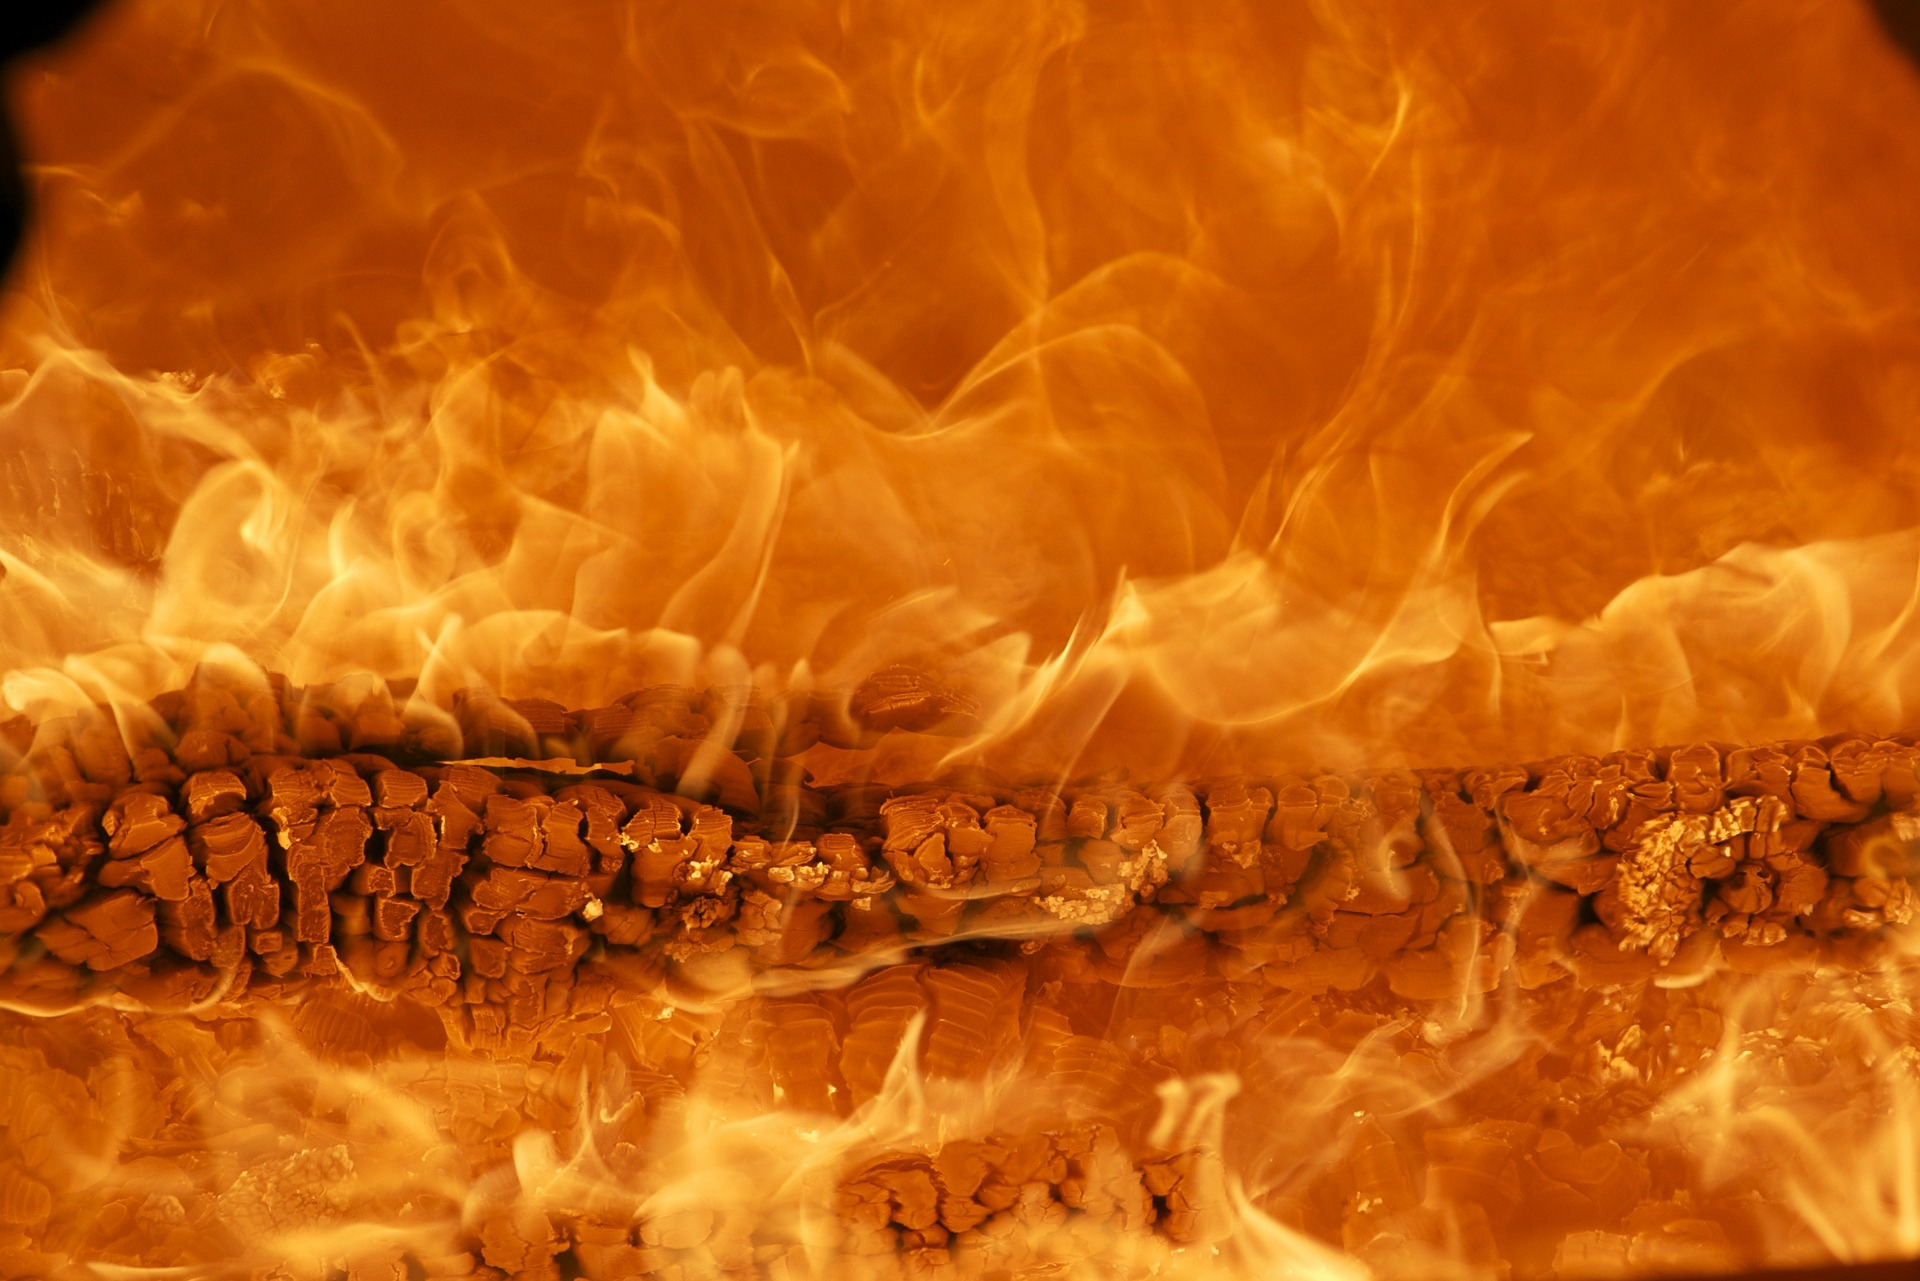 Fire repair helps restore property damage from sneaky fires.